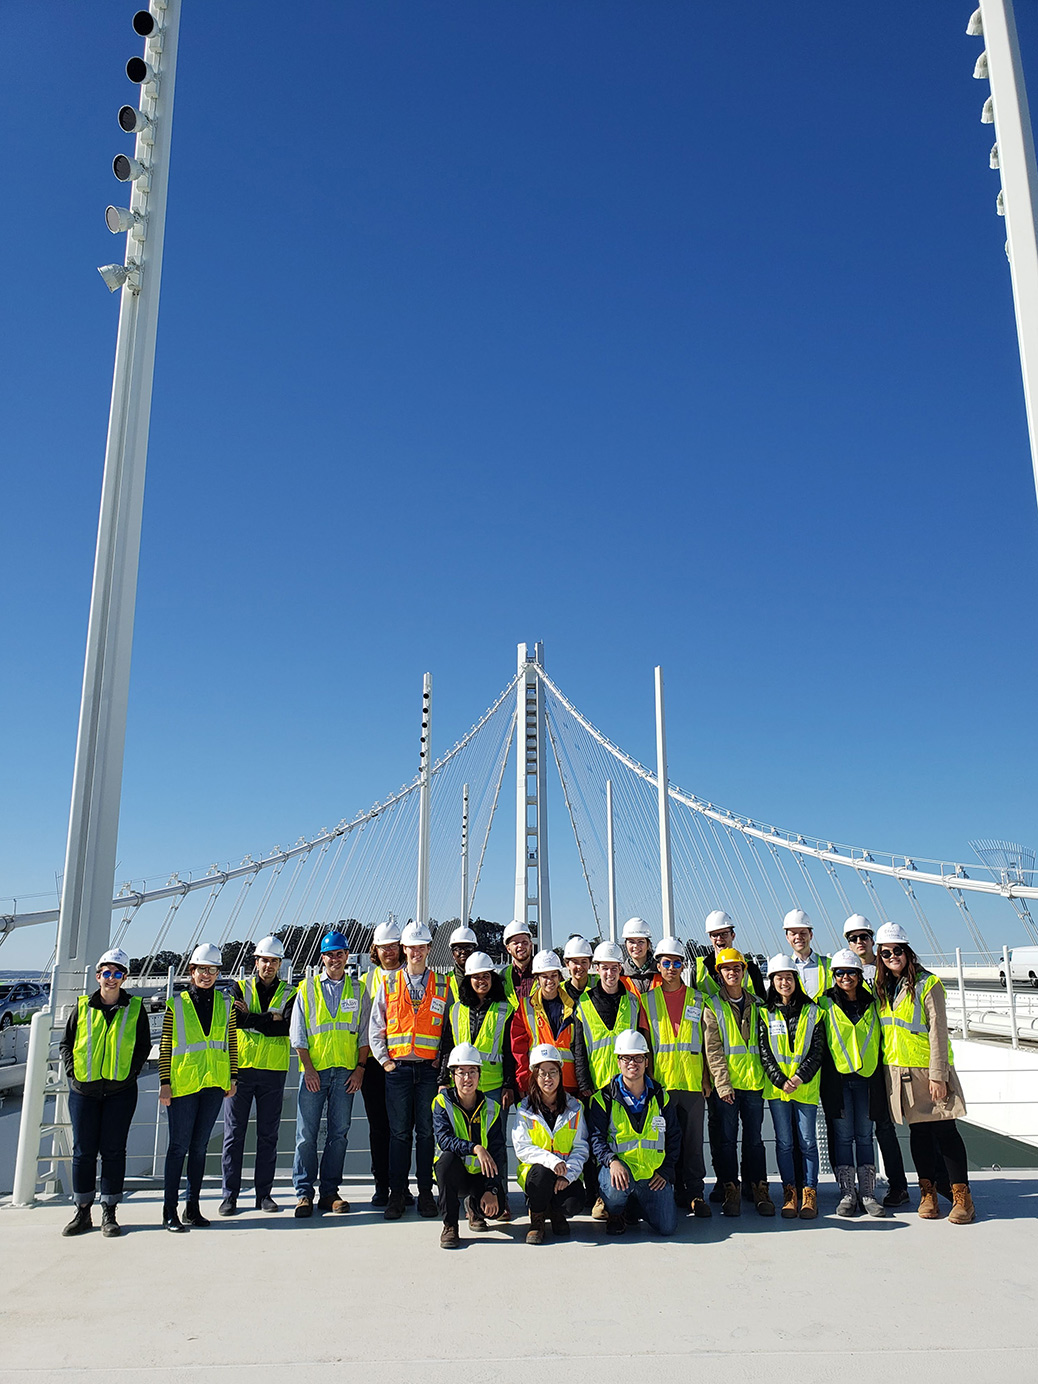 People in hard hats and safety vests pose on a white bridge with blue sky in the background